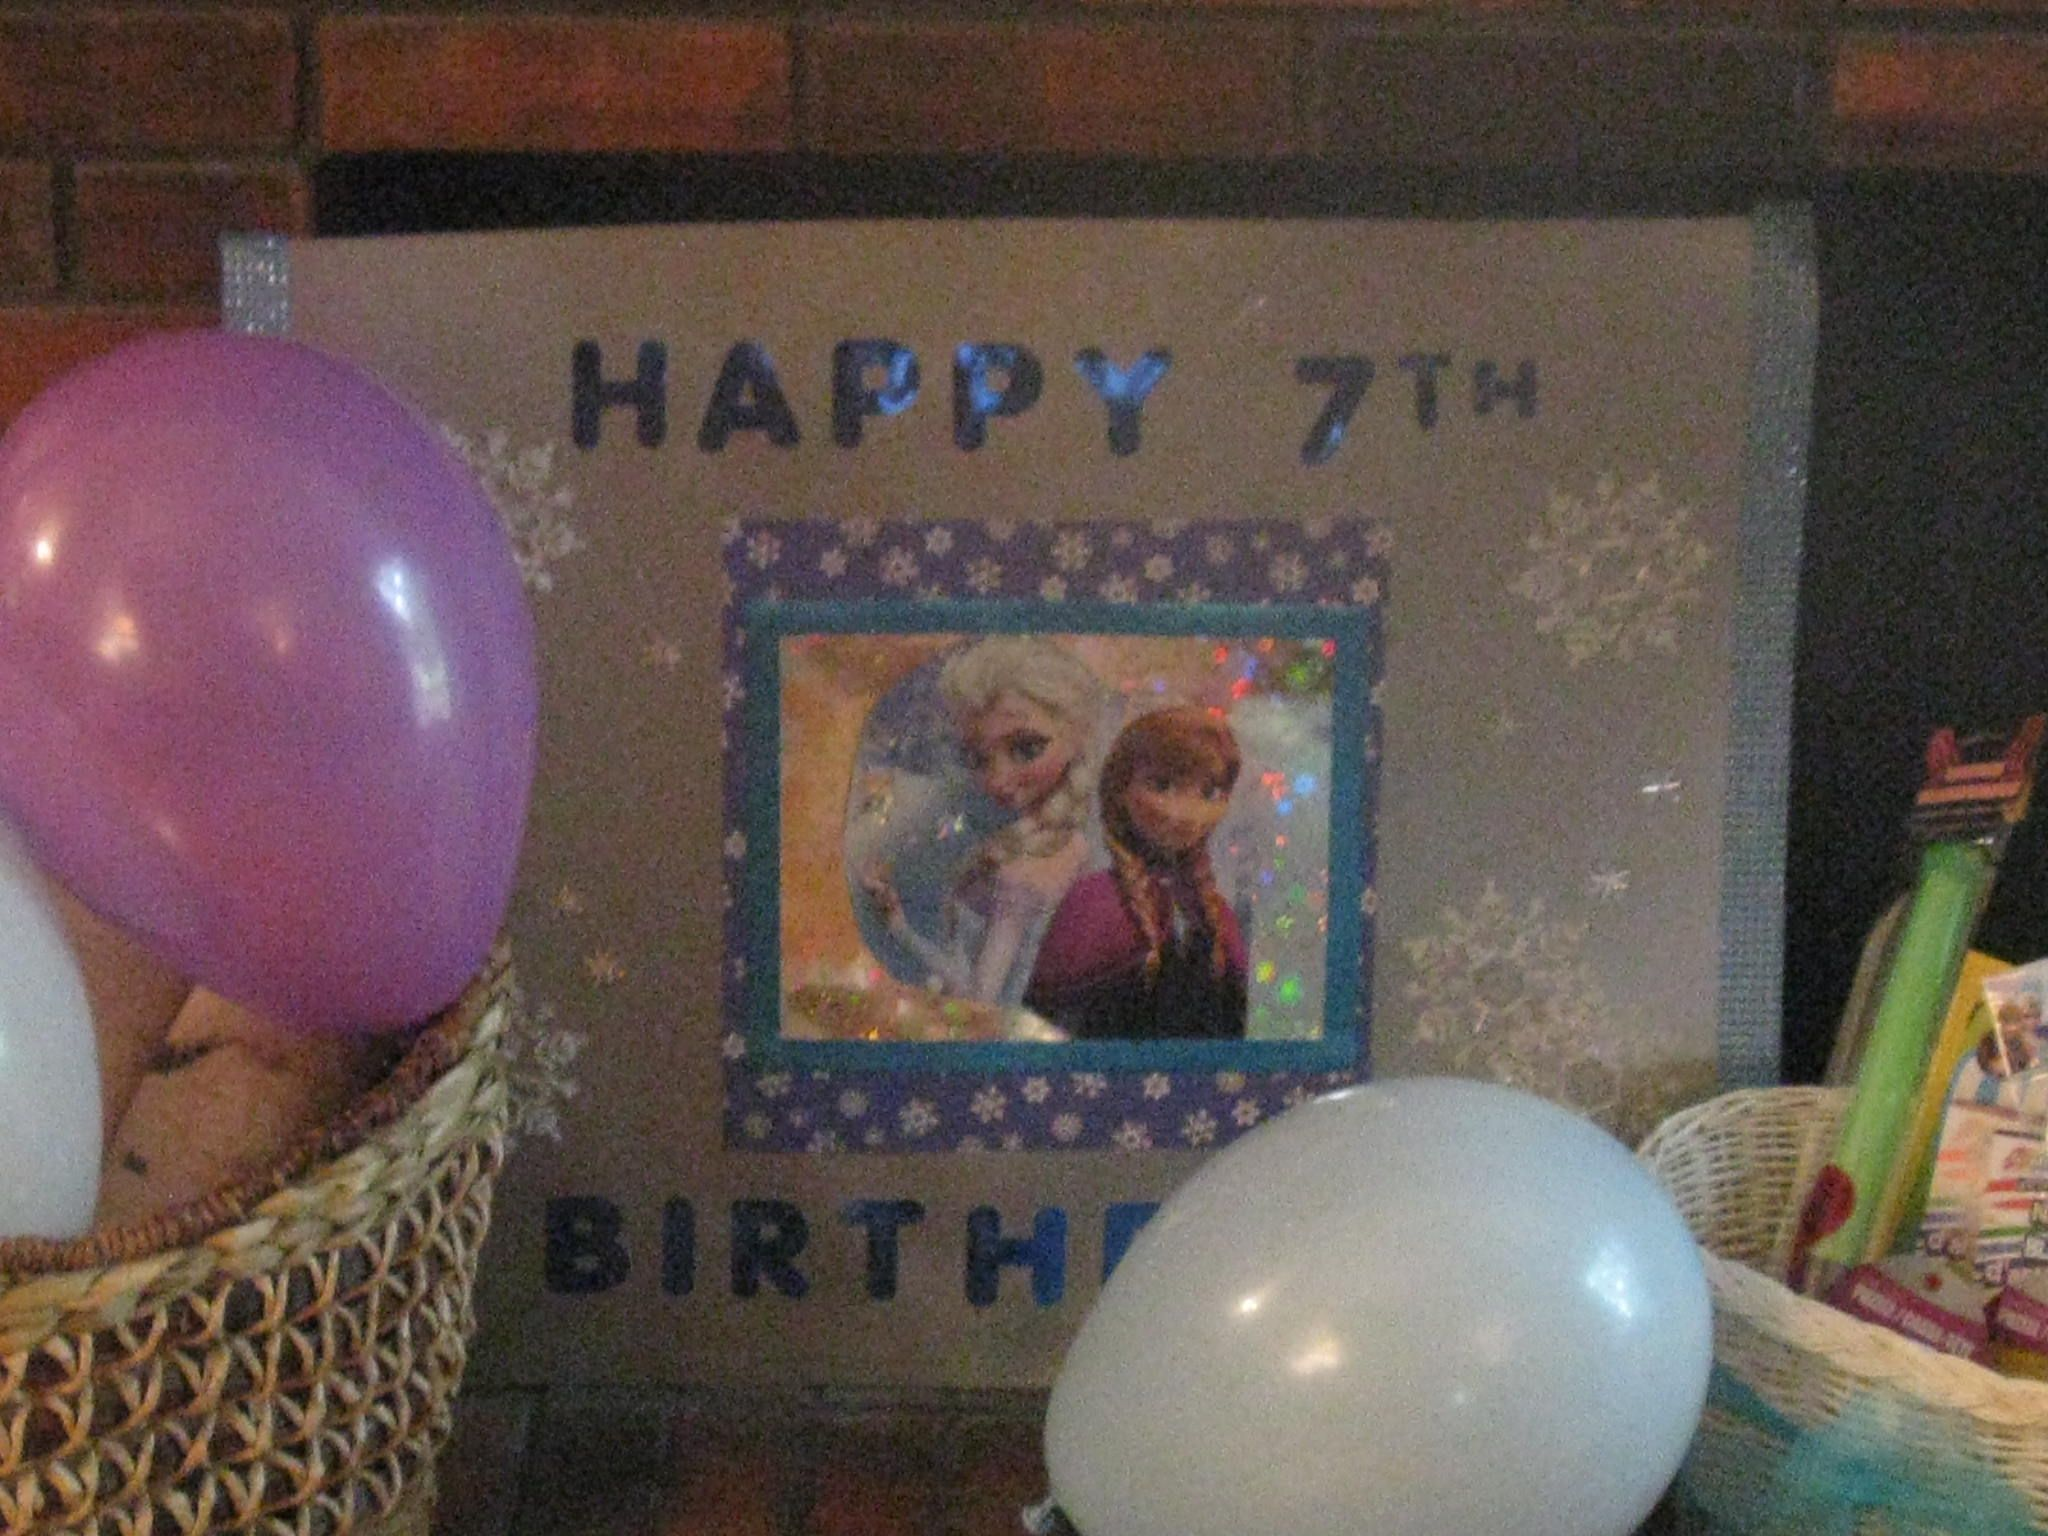 Frozen birthday party decorations ideas  Frozen happy birthday sign Made this sign using scrapbook supplies